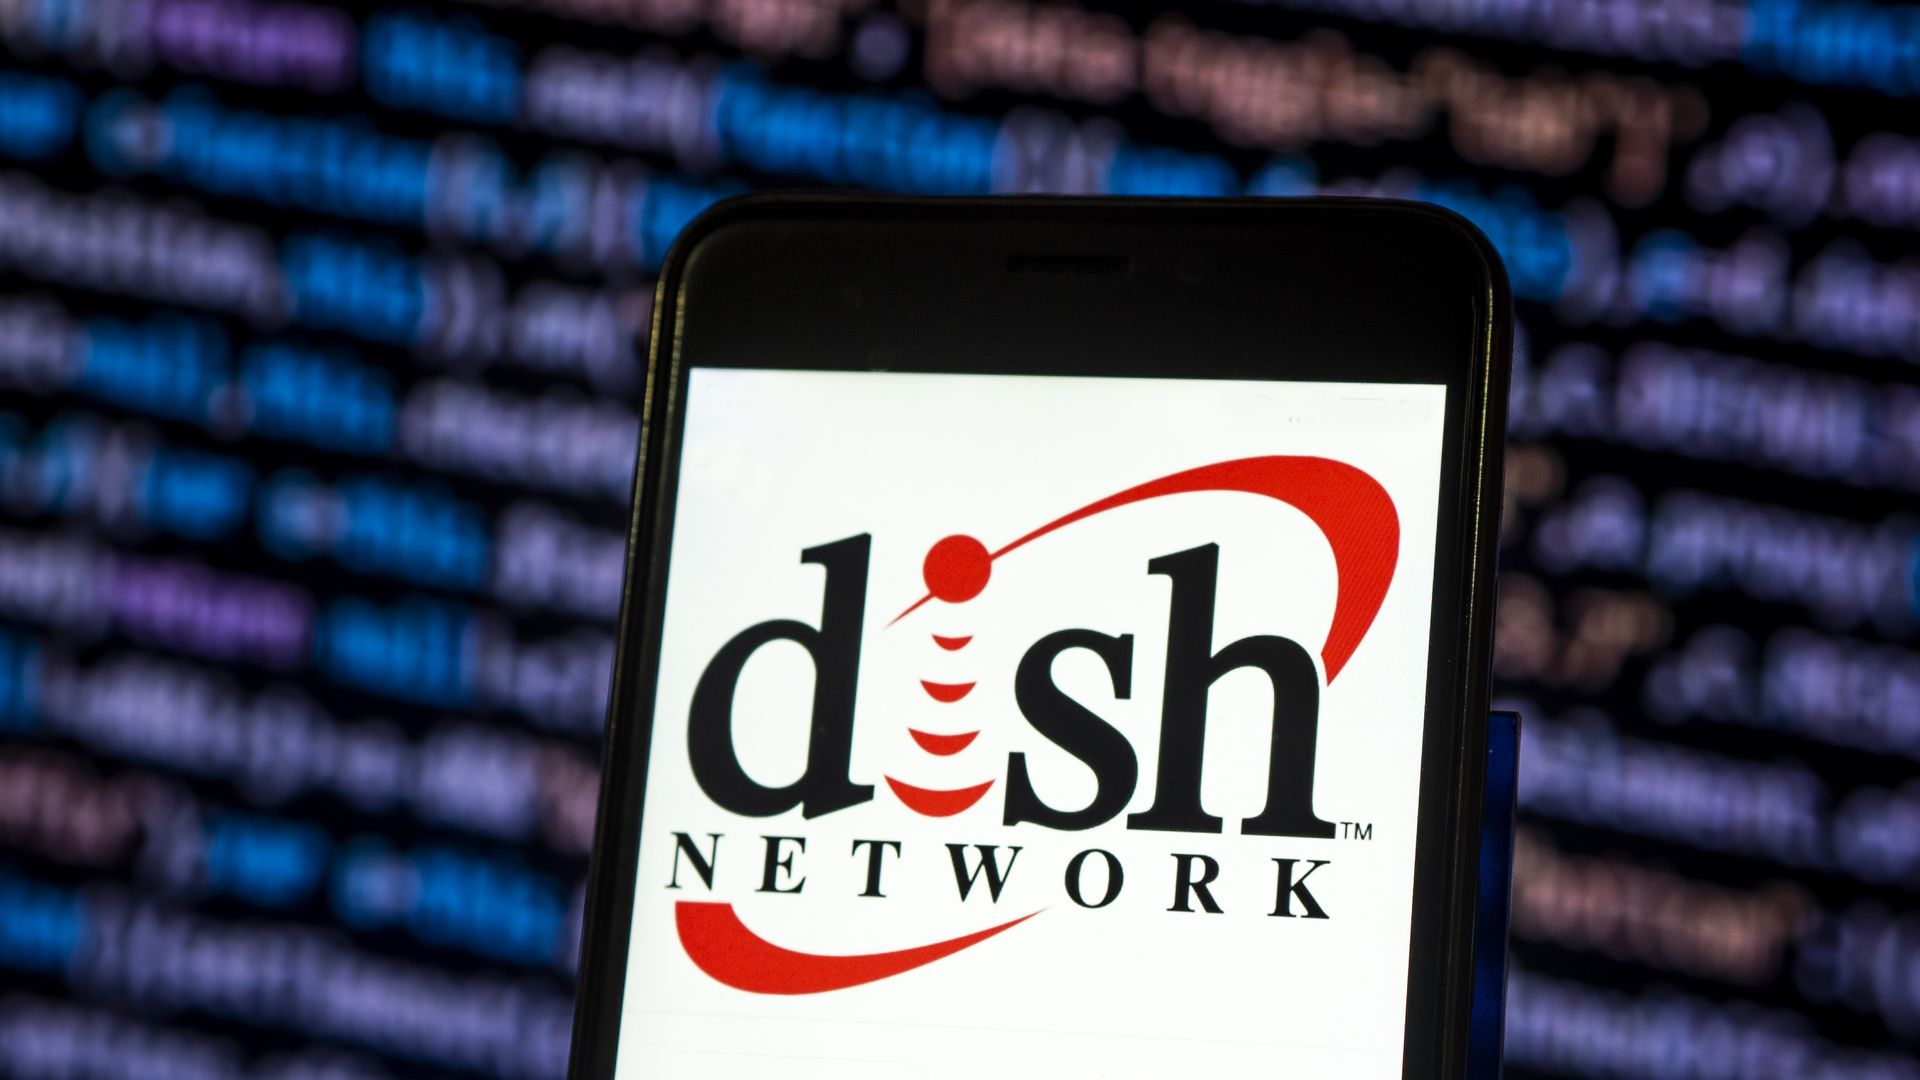 Photo of Dish Network logo on a smartphone screen